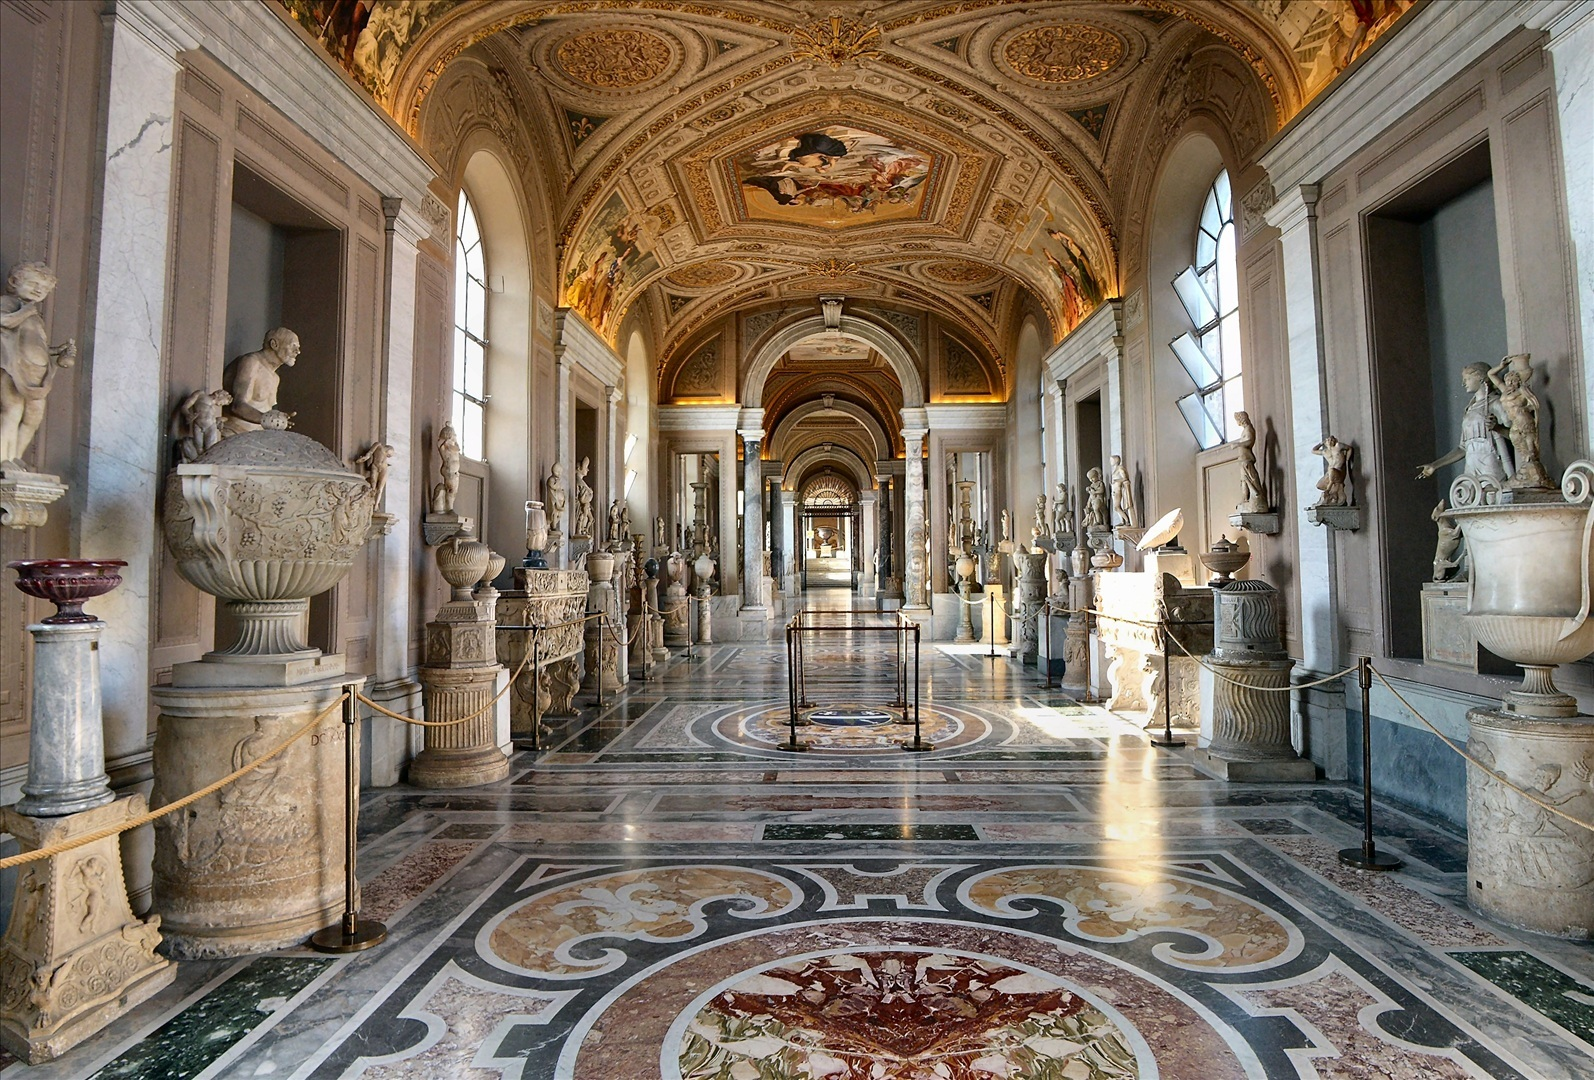 inside-vatican-museums-vatican-city-wallpaper-1594x1080